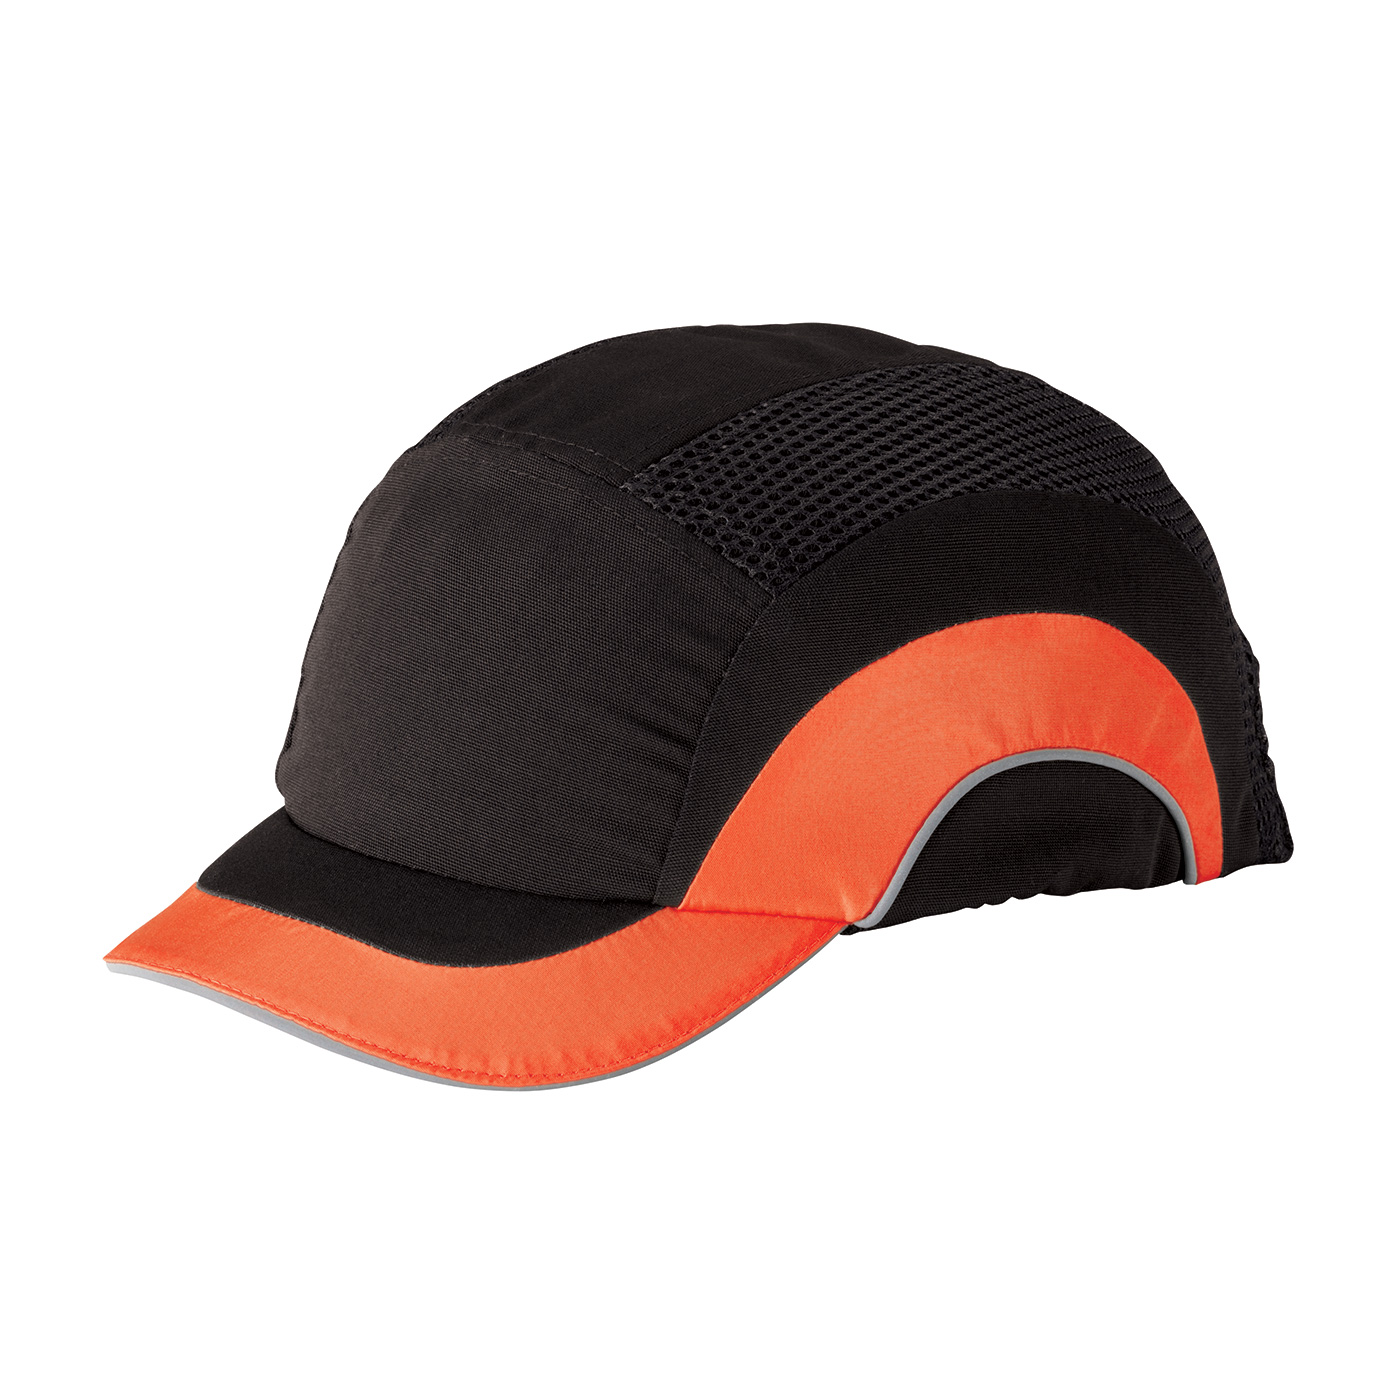 282-ABS150 PIP® HardCap A1+™ Low Profile Baseball Style Bump Cap with HDPE Protective Liner and 2` Short Brim - Black/Hi-Viz Orange